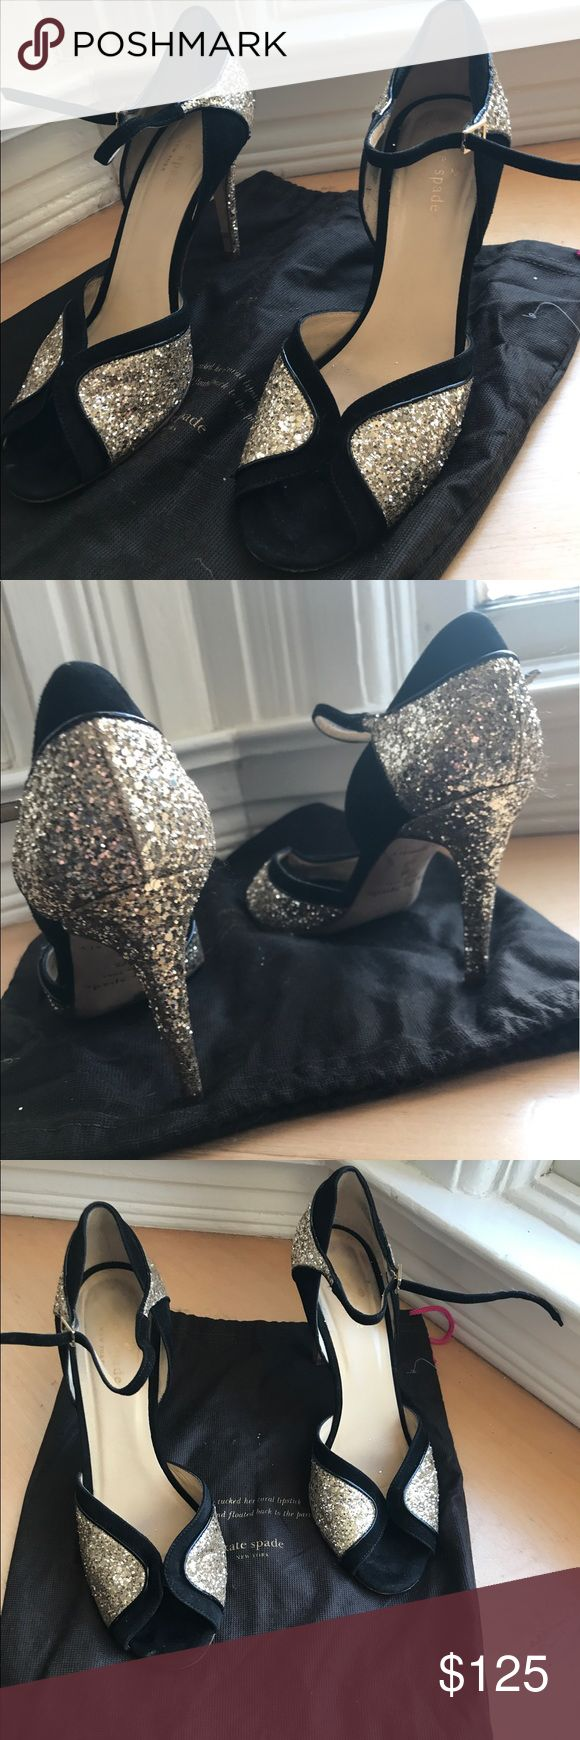 Kate Spade black and gold open toe heels Kate Spade black and gold open toe heels! Dust bag included. Used but in good condition. kate spade Shoes Heels